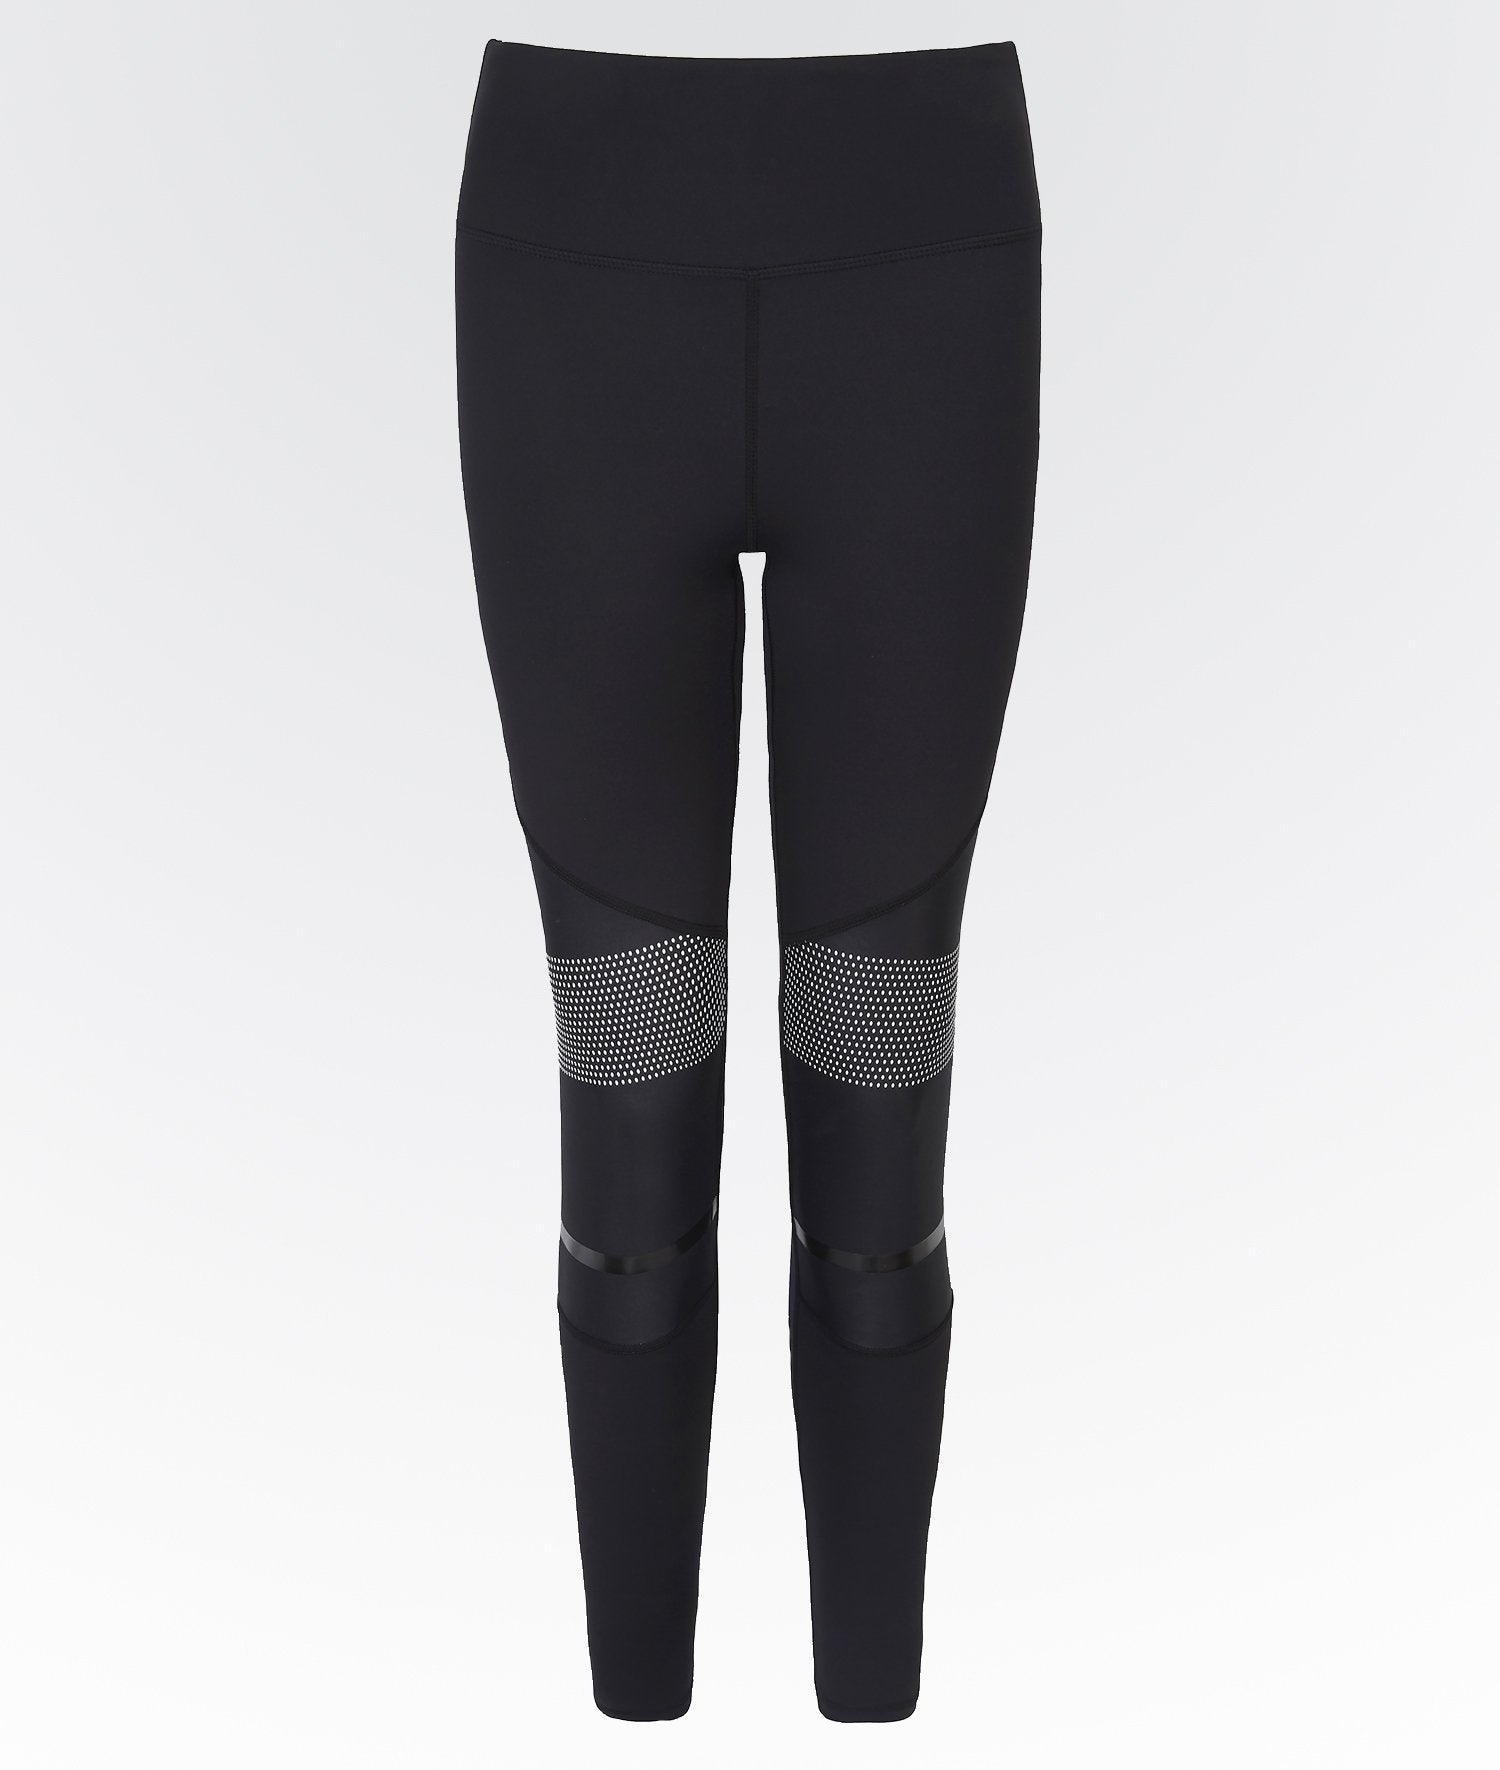 42182b1cfcd50 Go With The Flow Legging | My Gym Wardrobe | Women's Activewear